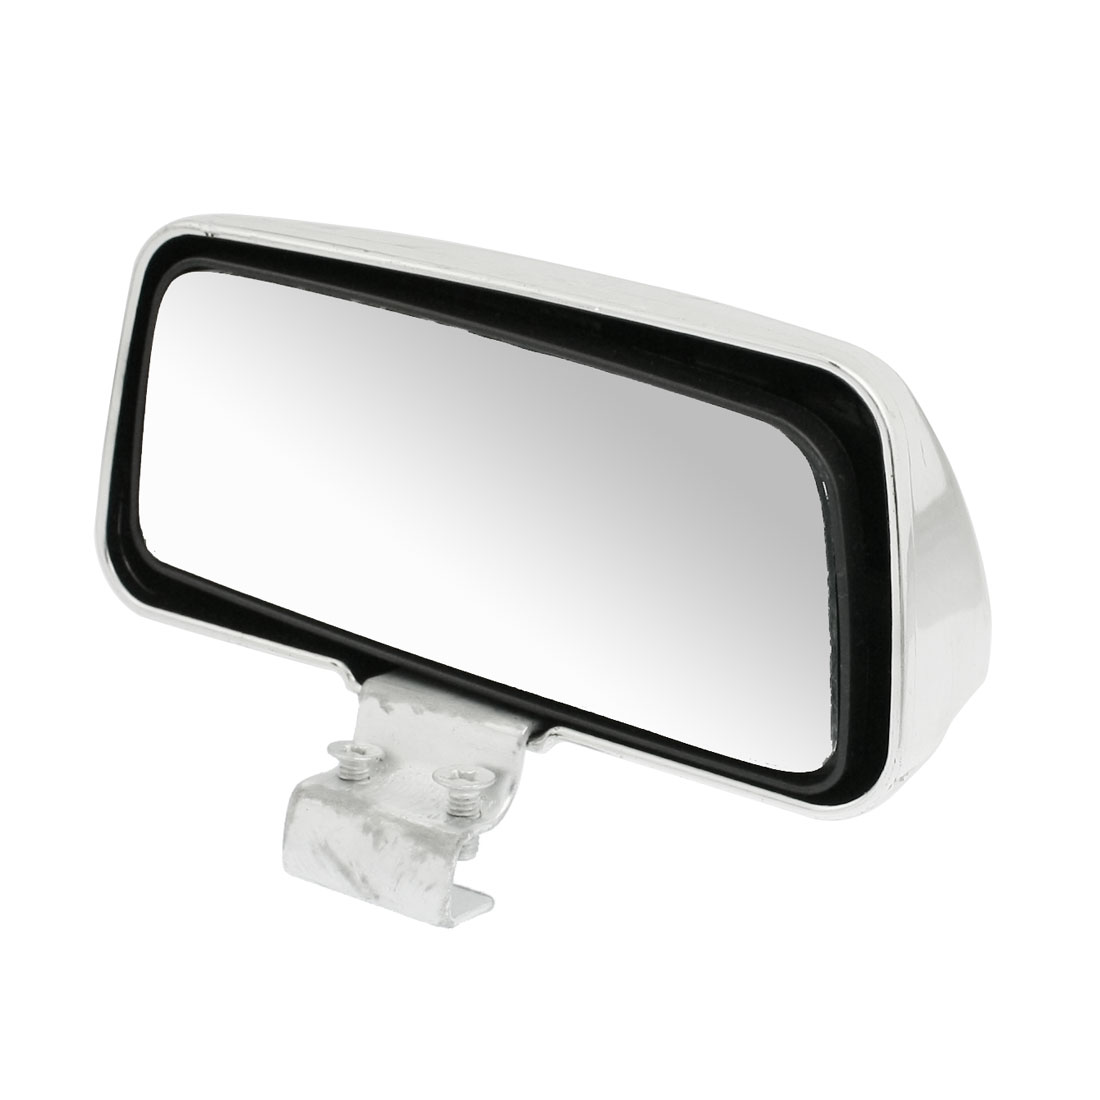 Vehicle Truck Car Adjustable Rear View Blind Spot Mirror Silver Tone